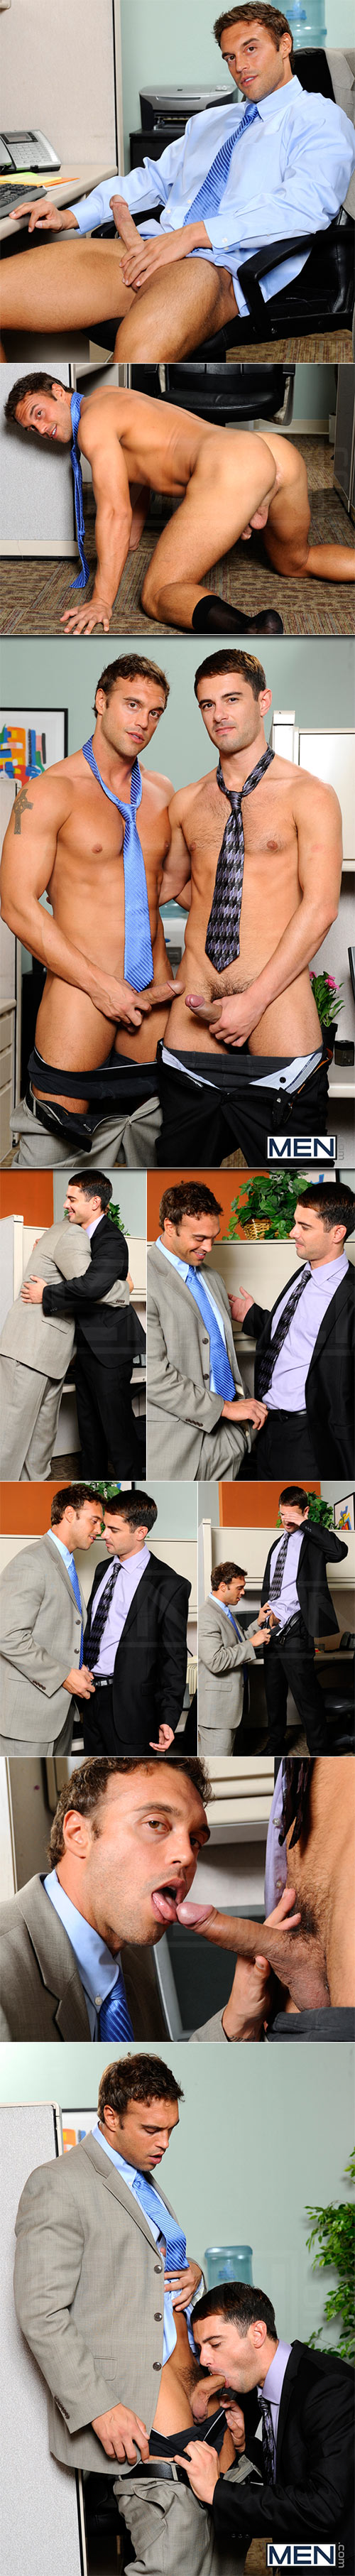 "Men.com: Donny Wright fucks Rocco Reed in ""Last Day On The Job"""